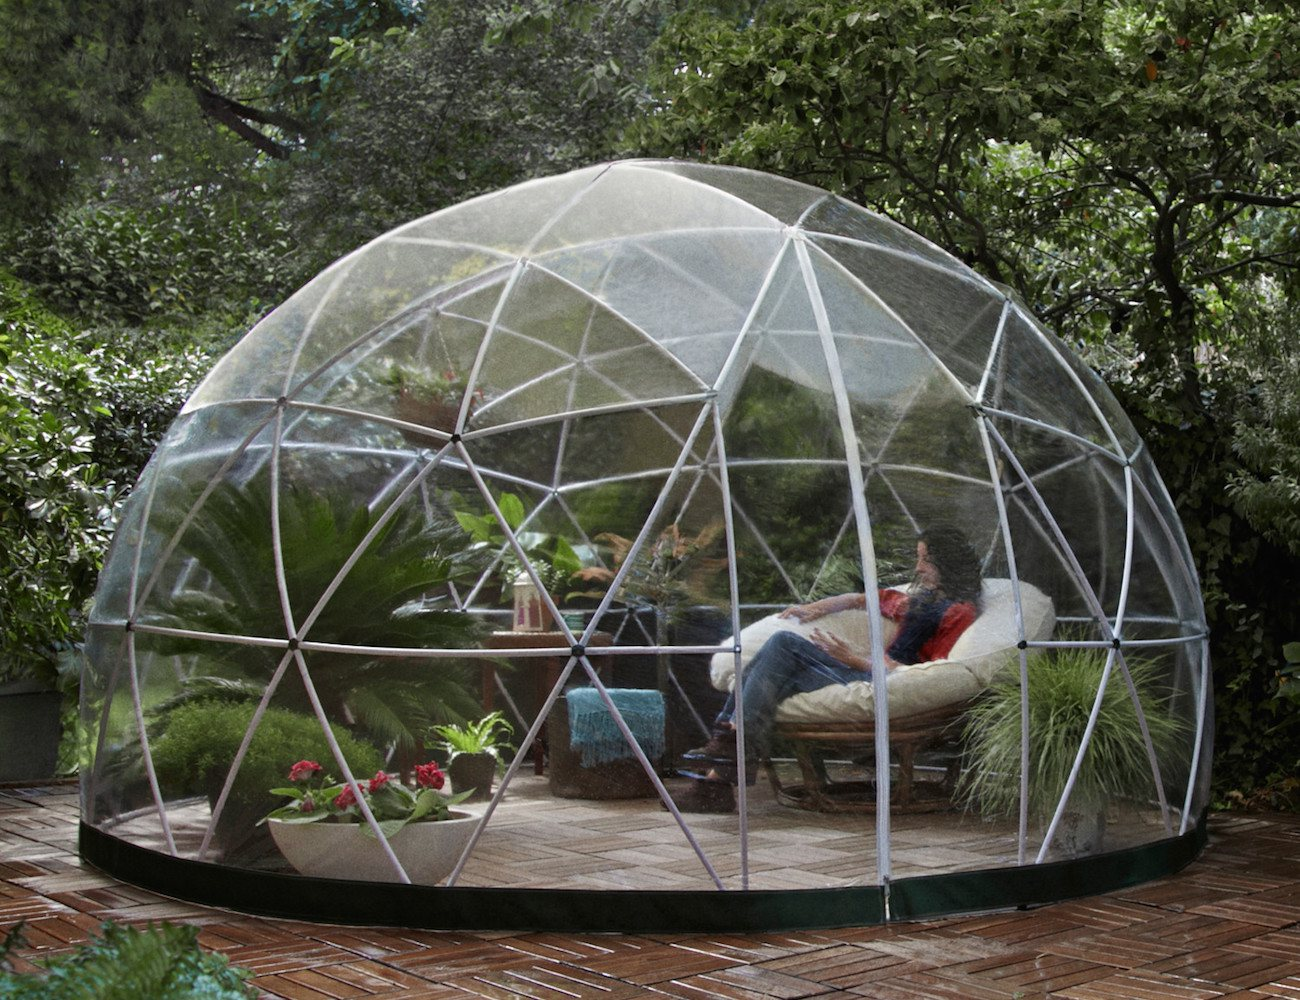 Garden Igloo - Outdoor Living Space For Your Garden ... on Garden And Outdoor Living id=55171